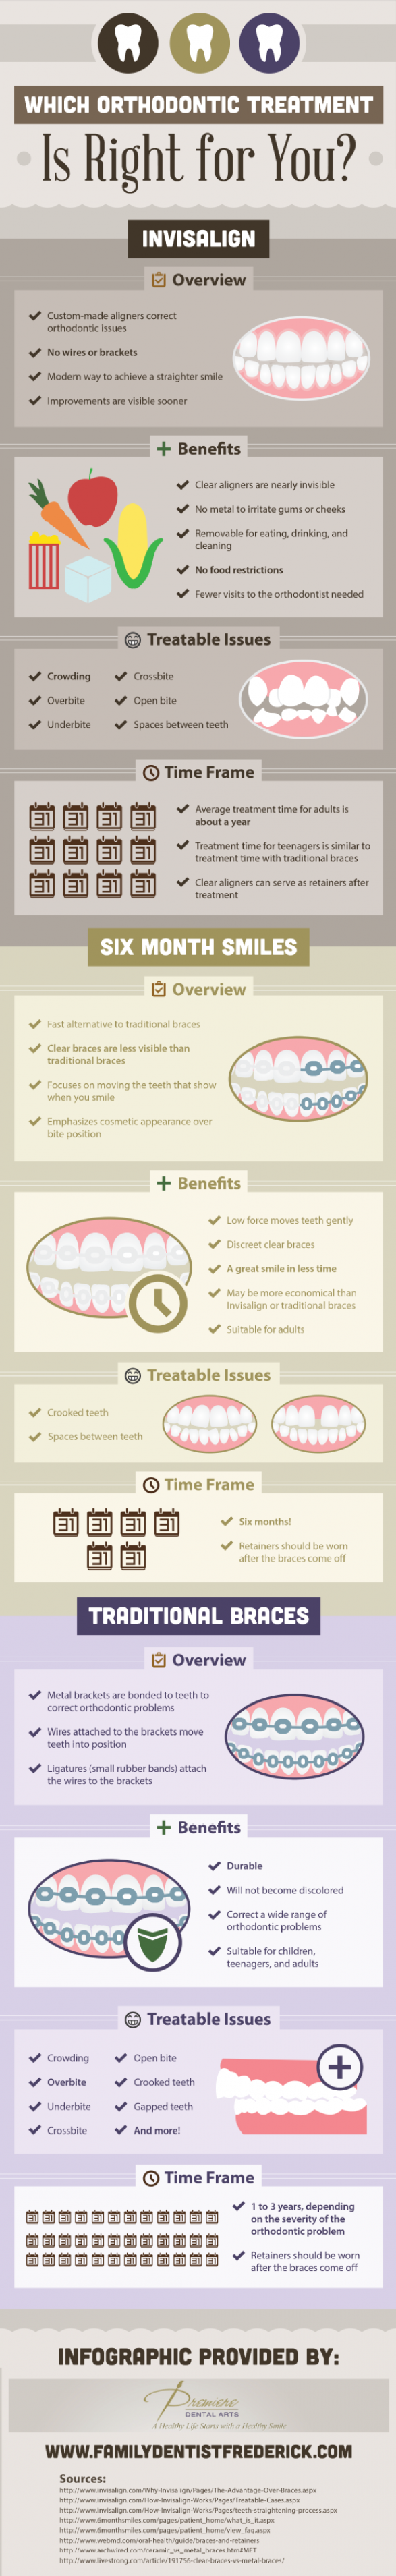 Which Orthodontic Treatment Is Right for You?